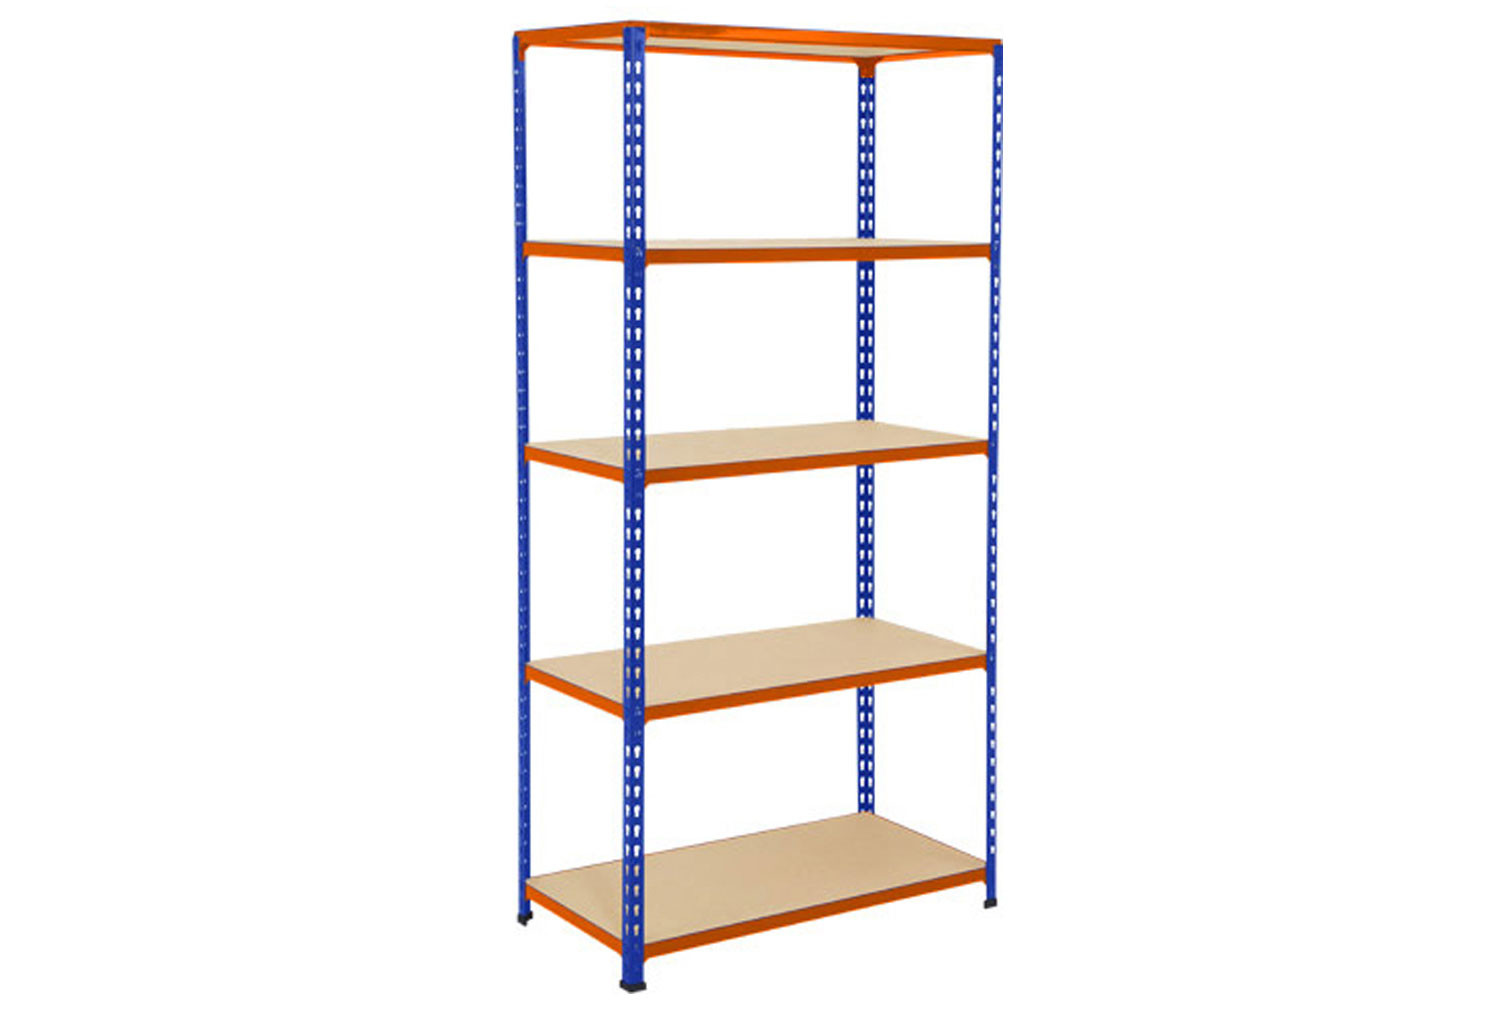 Rapid 2 Shelving With 5 Chipboard Shelves 915wx1980h (Blue/Orange)